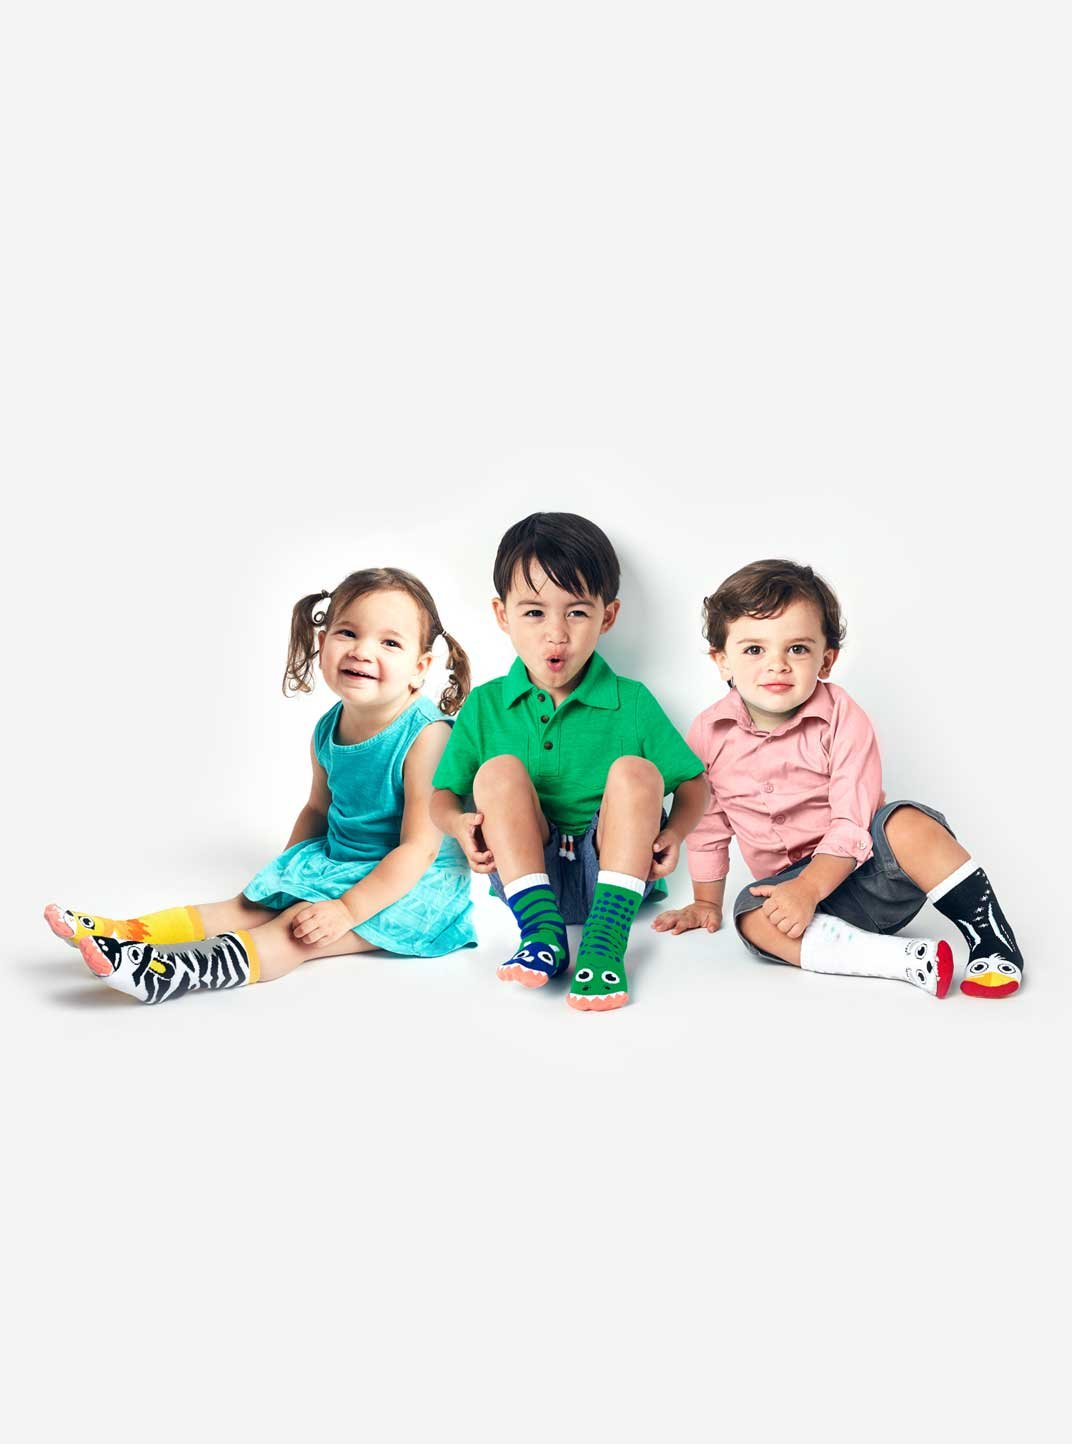 Lion and Zebra, T-Rex and Triceratops, Polar Bear and Penguin - Toddler Sock Set - Mighty Mates Mismatched Friends 3-Pack by Pals Socks (Image #3)